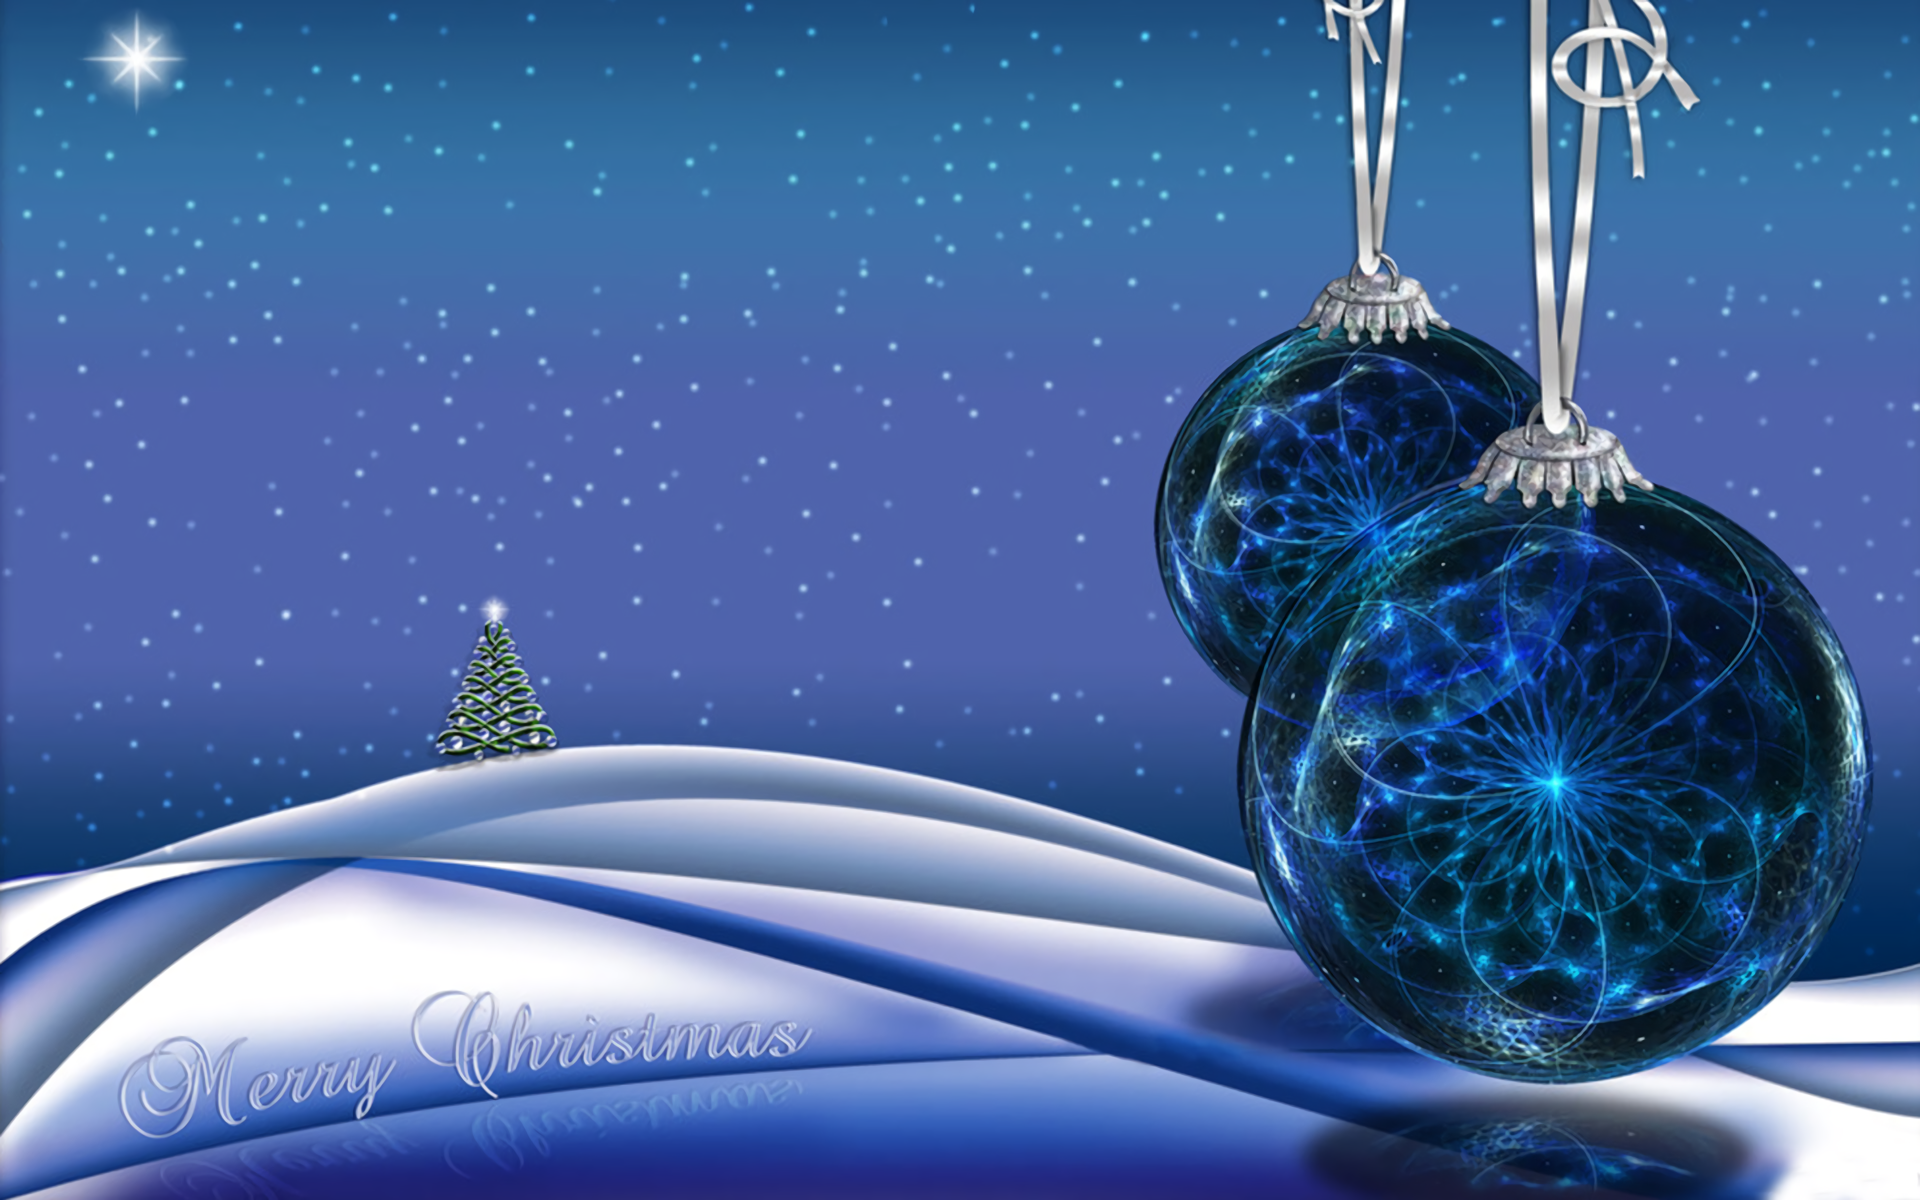 Blue Christmas Ornaments and Christmas Tree Full HD ... Christmas Ornaments Iphone Wallpaper